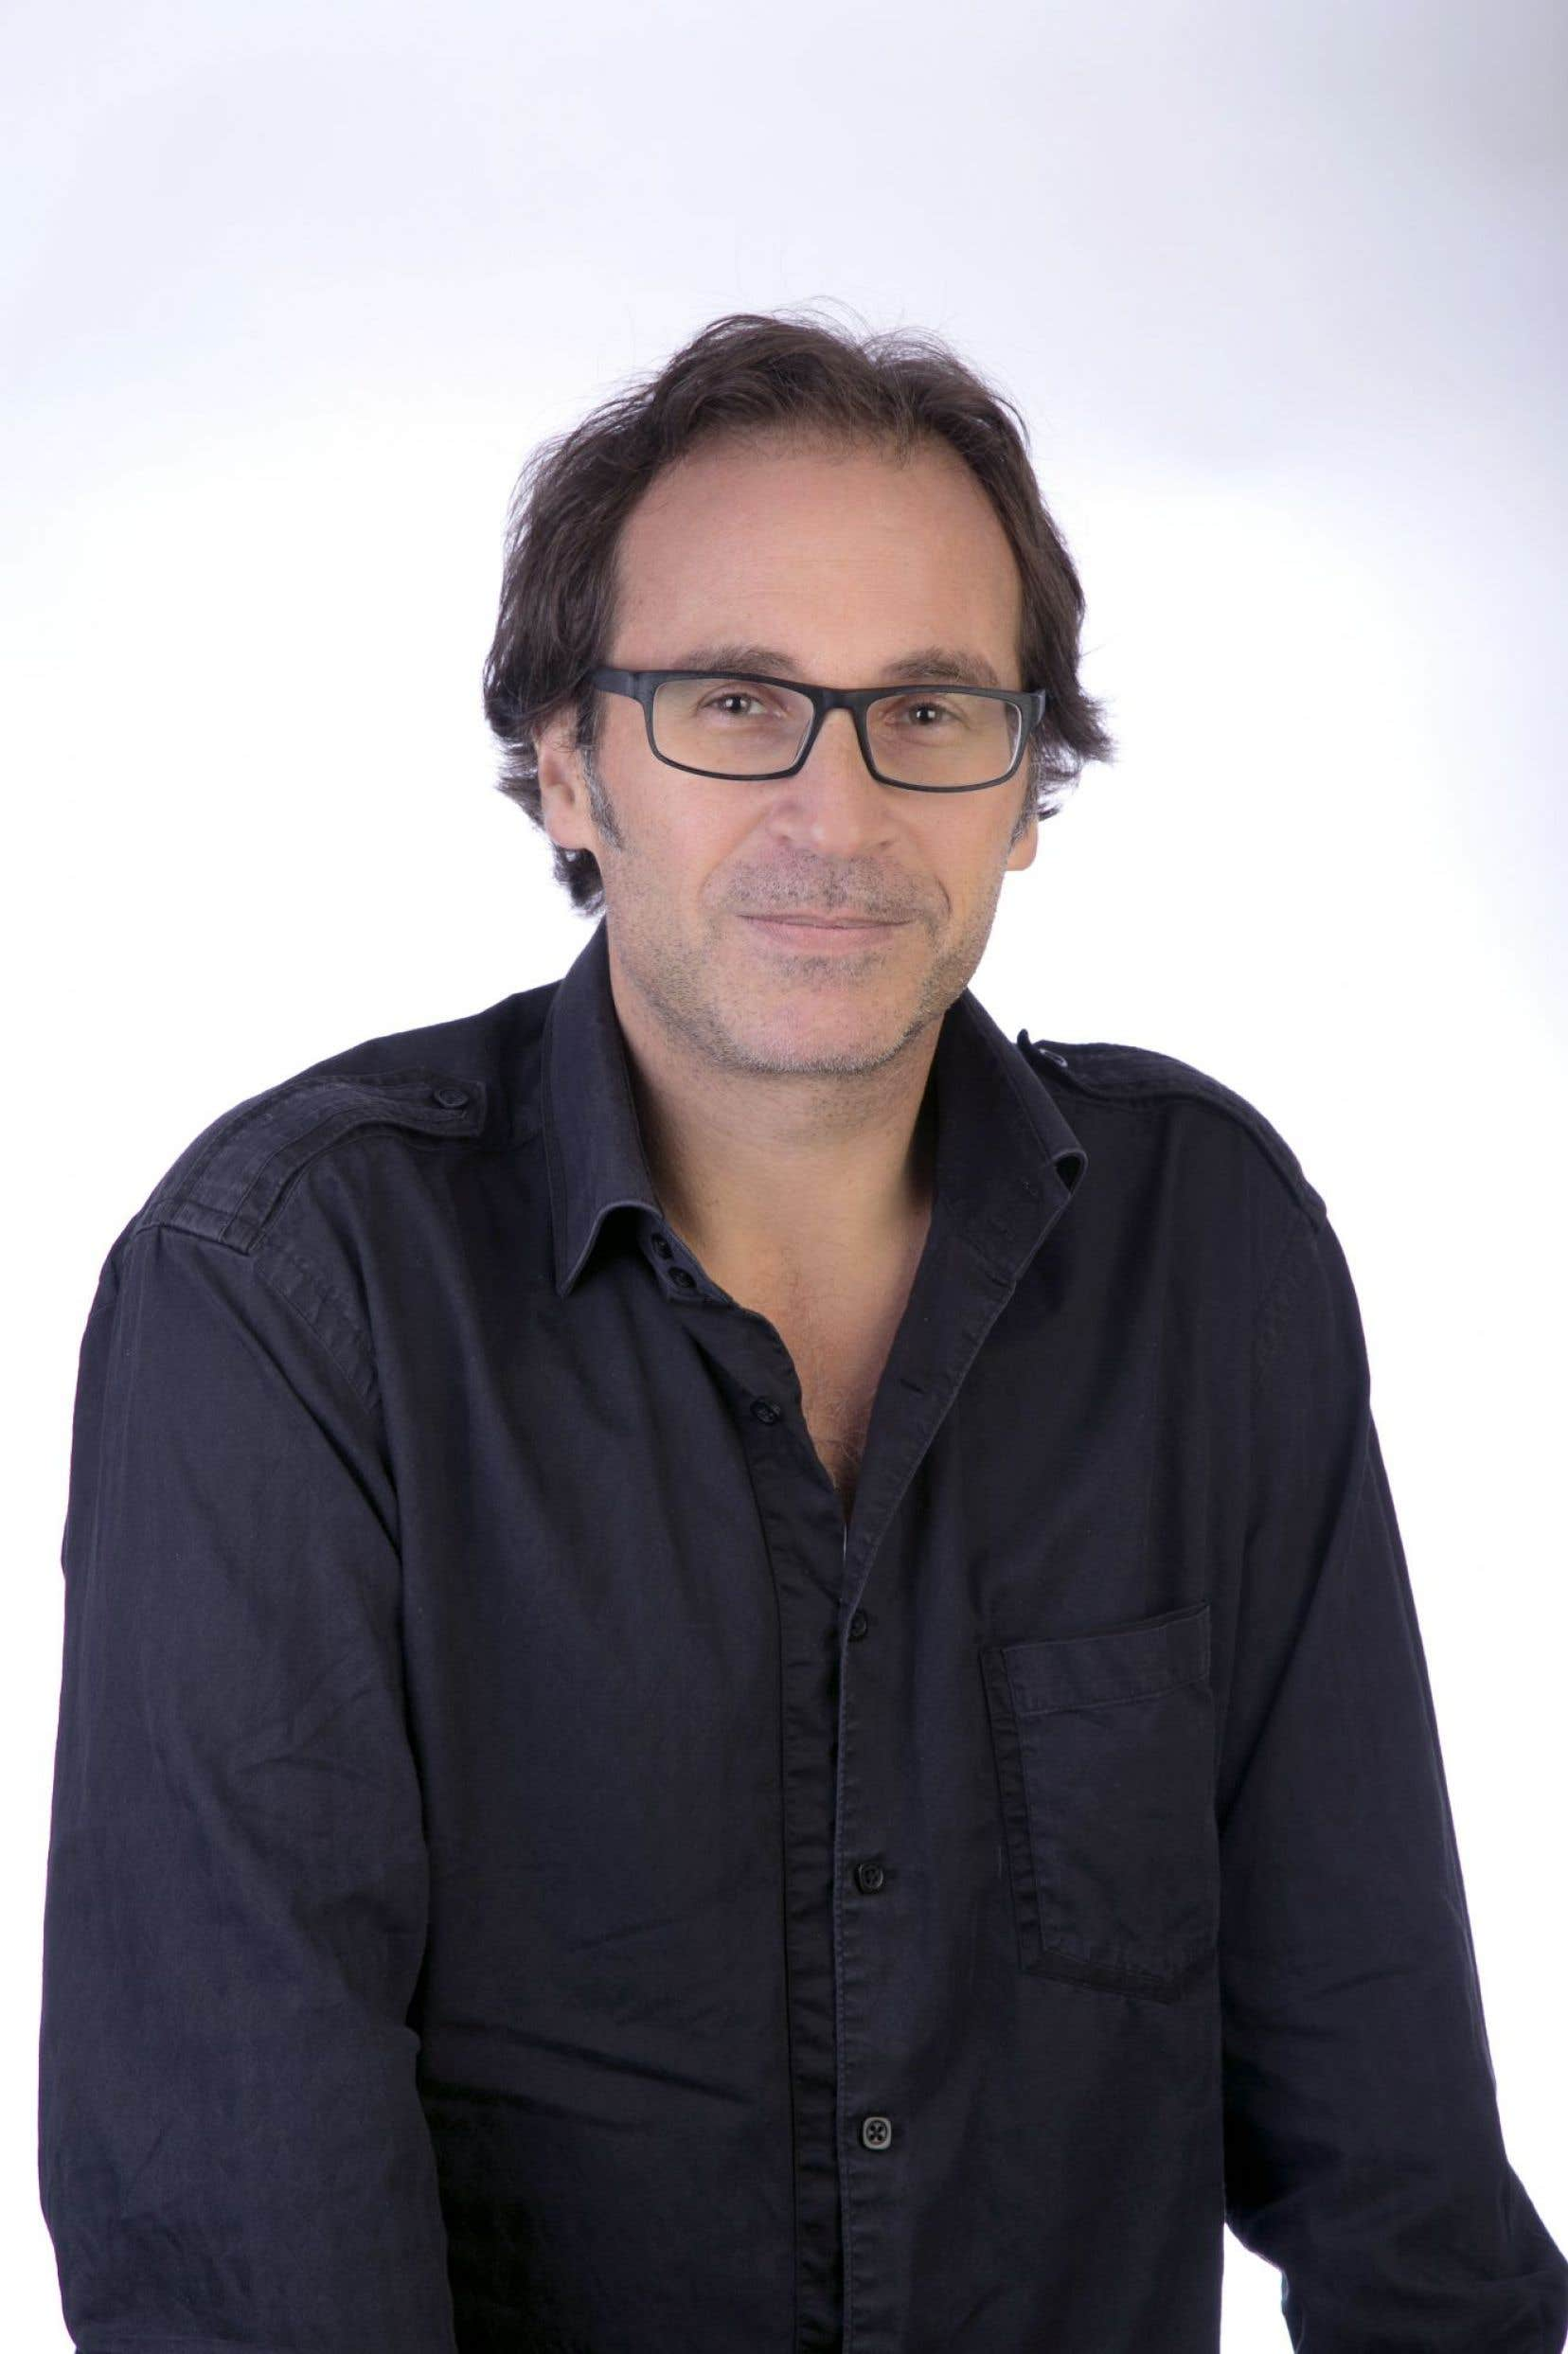 Le journaliste Gary Lawrence